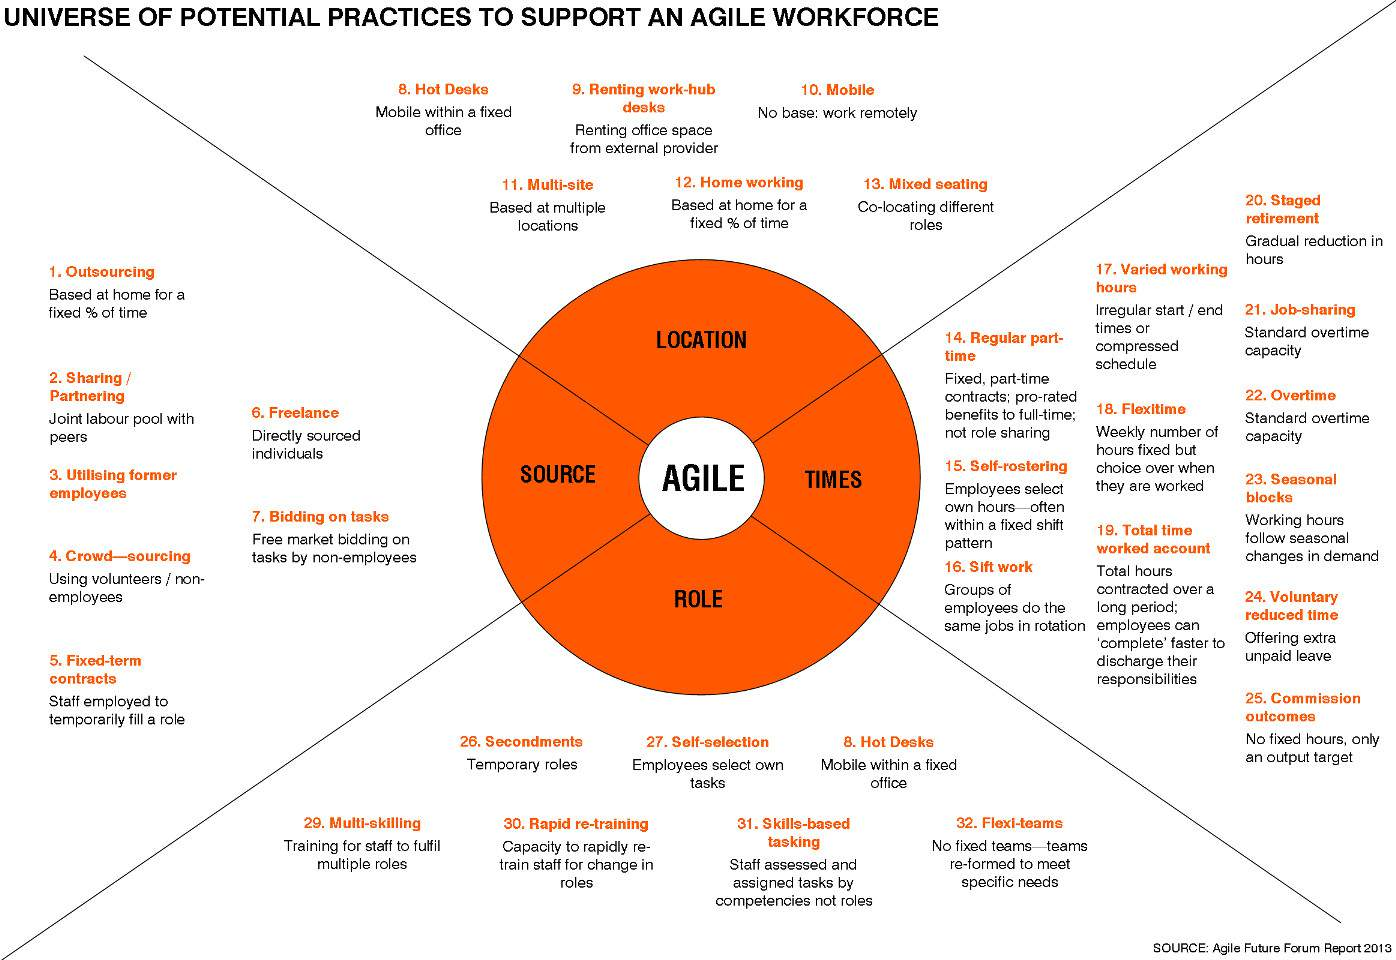 Universe of potential practices to support an agile workforce